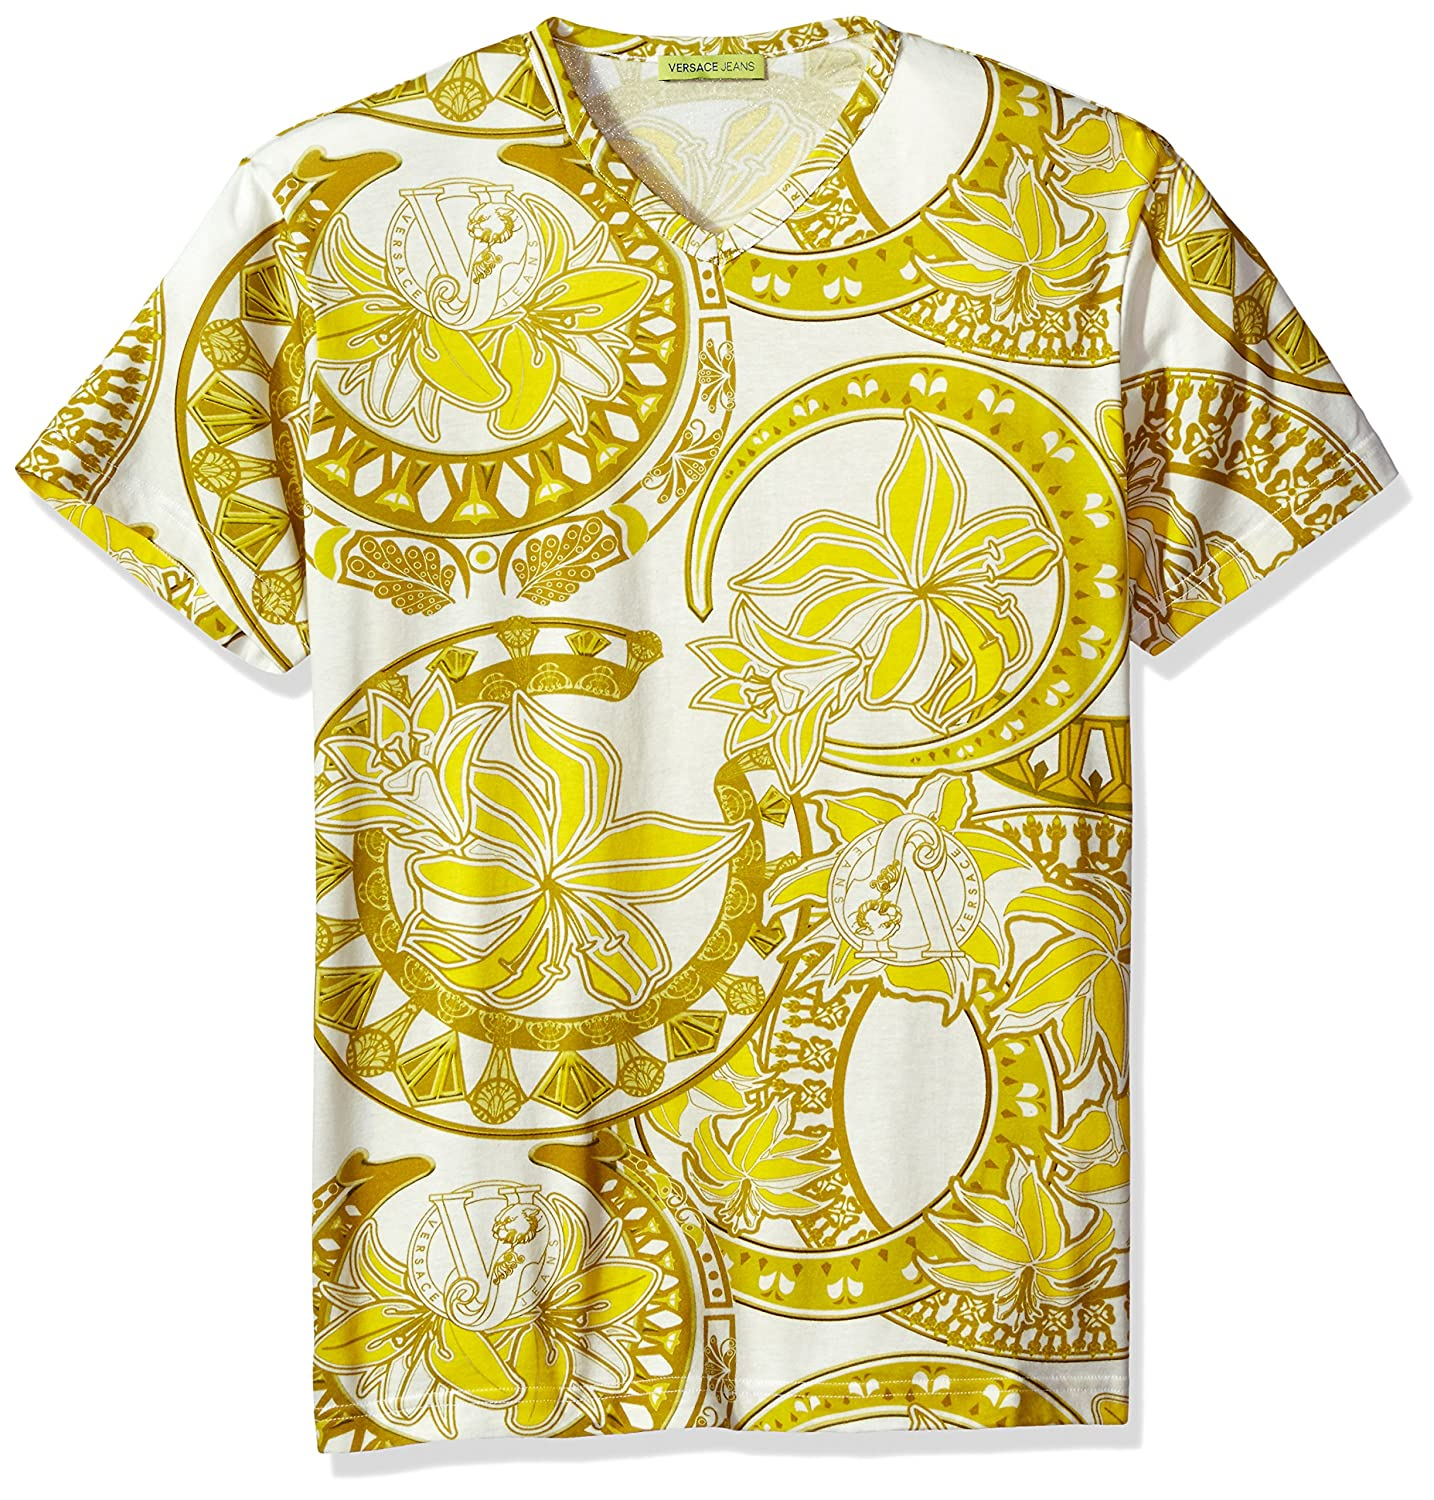 Versace Formal Shirts Price In India - Ortsplanungsrevision